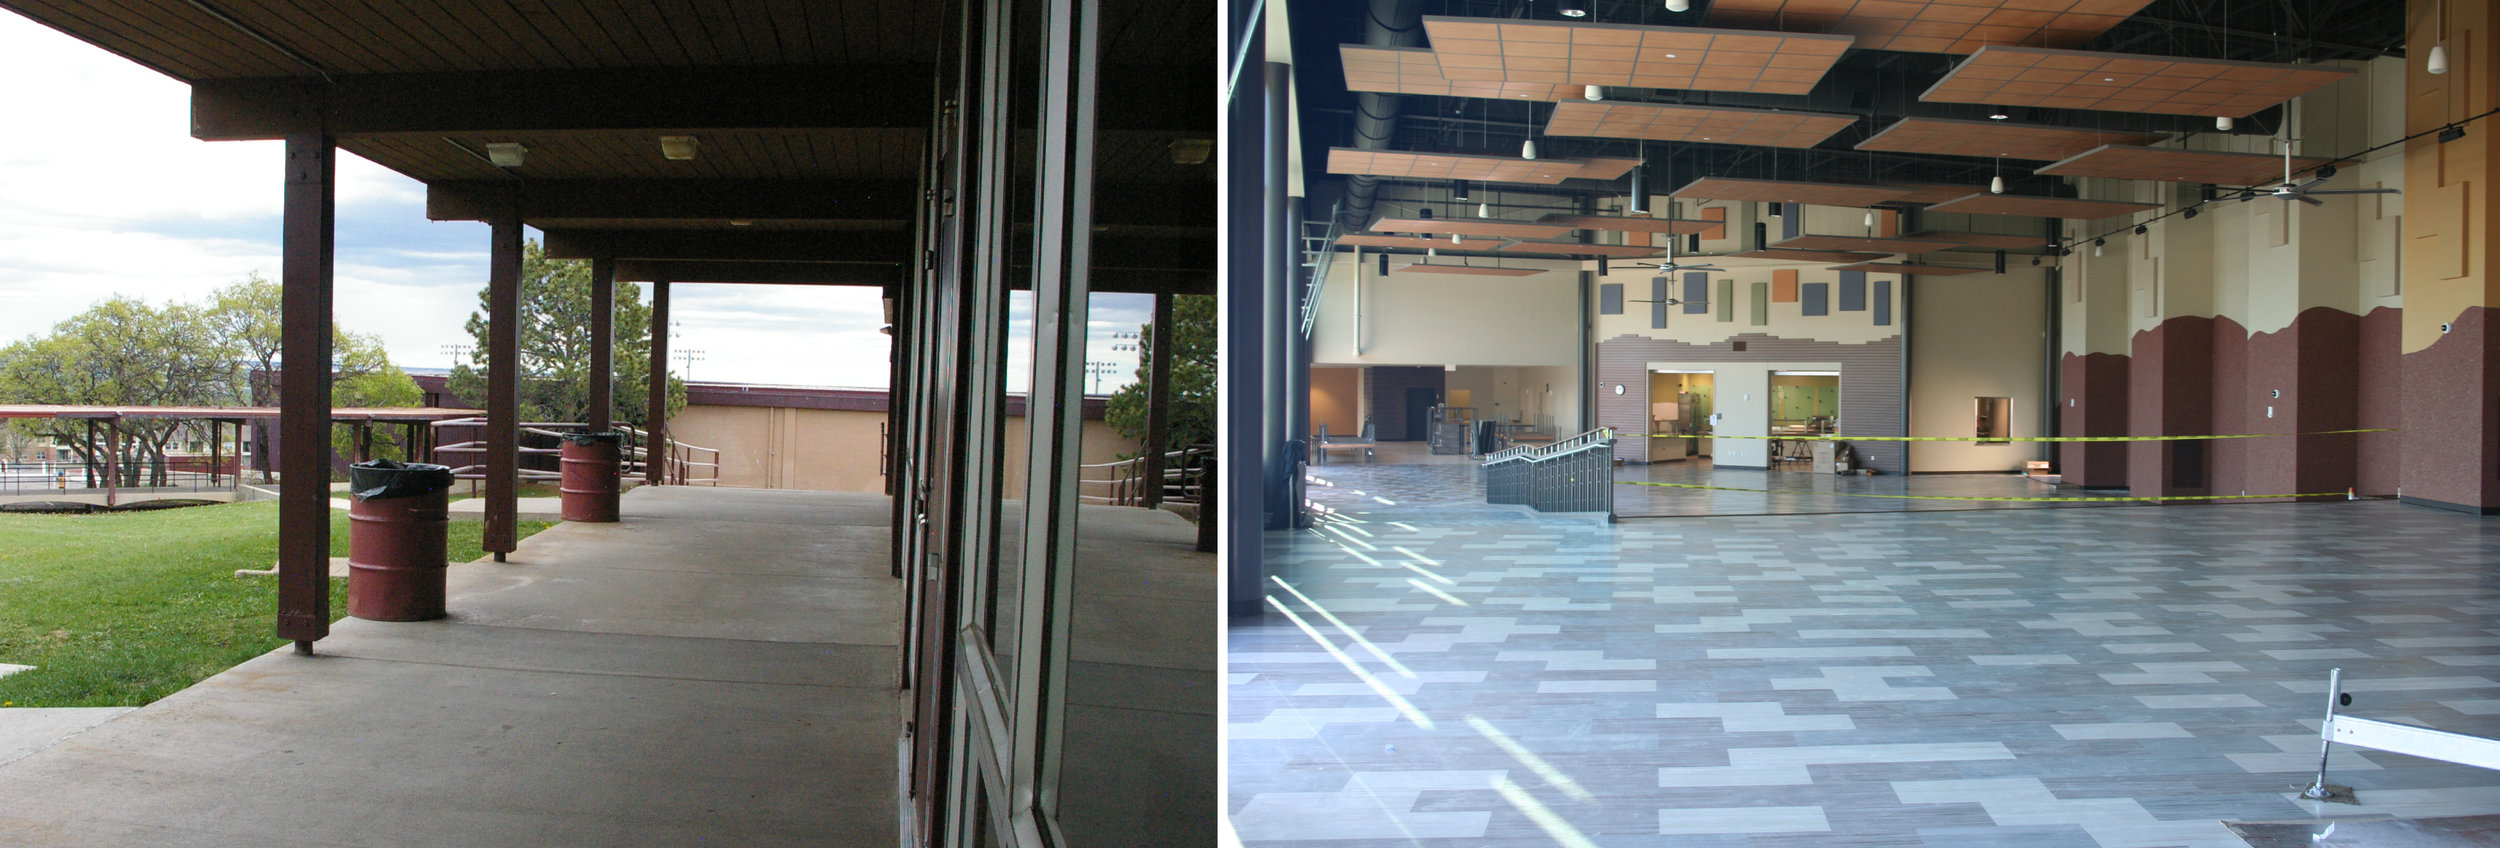 In both images, the wall to the far right is the wall leading into the auditorium. The space was extended out and enclosed to form the new student commons and auditorium main entrance. (After Image updated on 8-3-16)